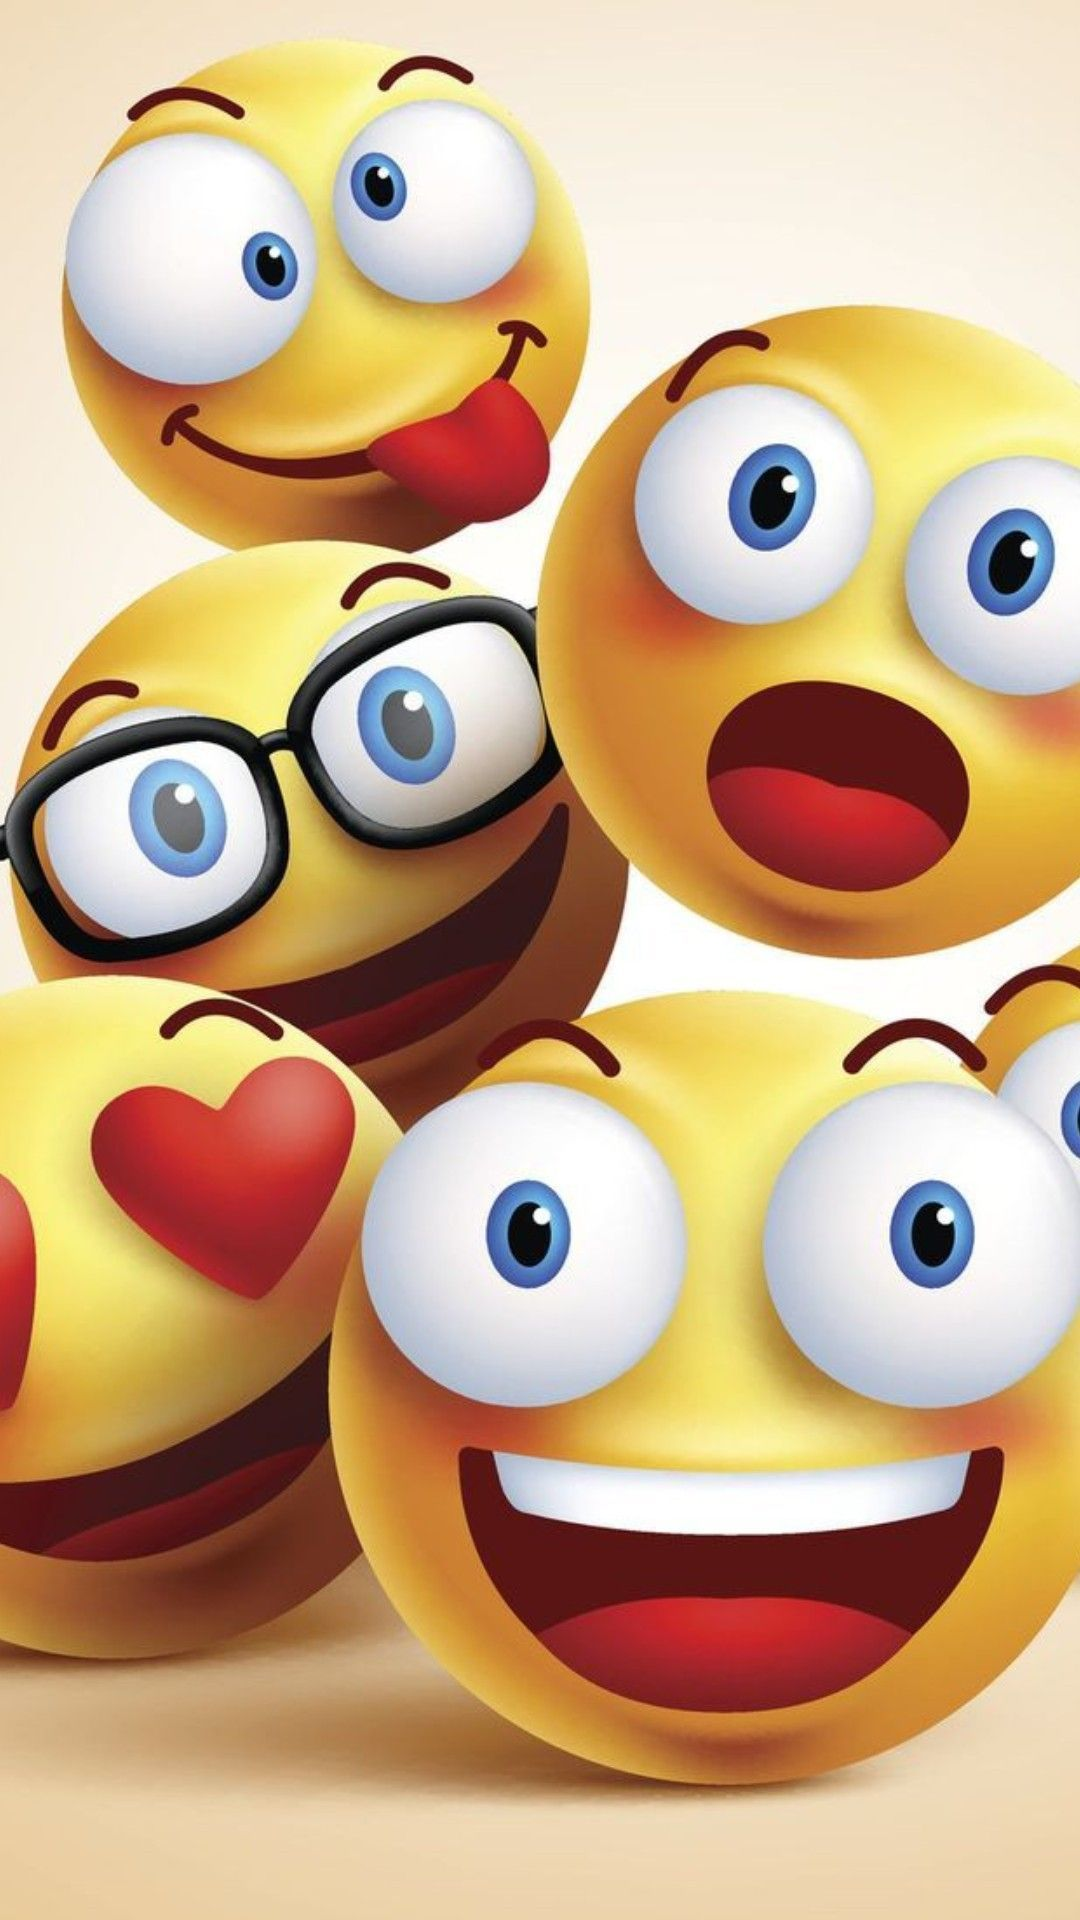 Emoji Background Hupages Download Iphone Wallpapers Emoji Backgrounds Cute Emoji Wallpaper Emoji Wallpaper Cute cool whatsapp wallpaper 3d